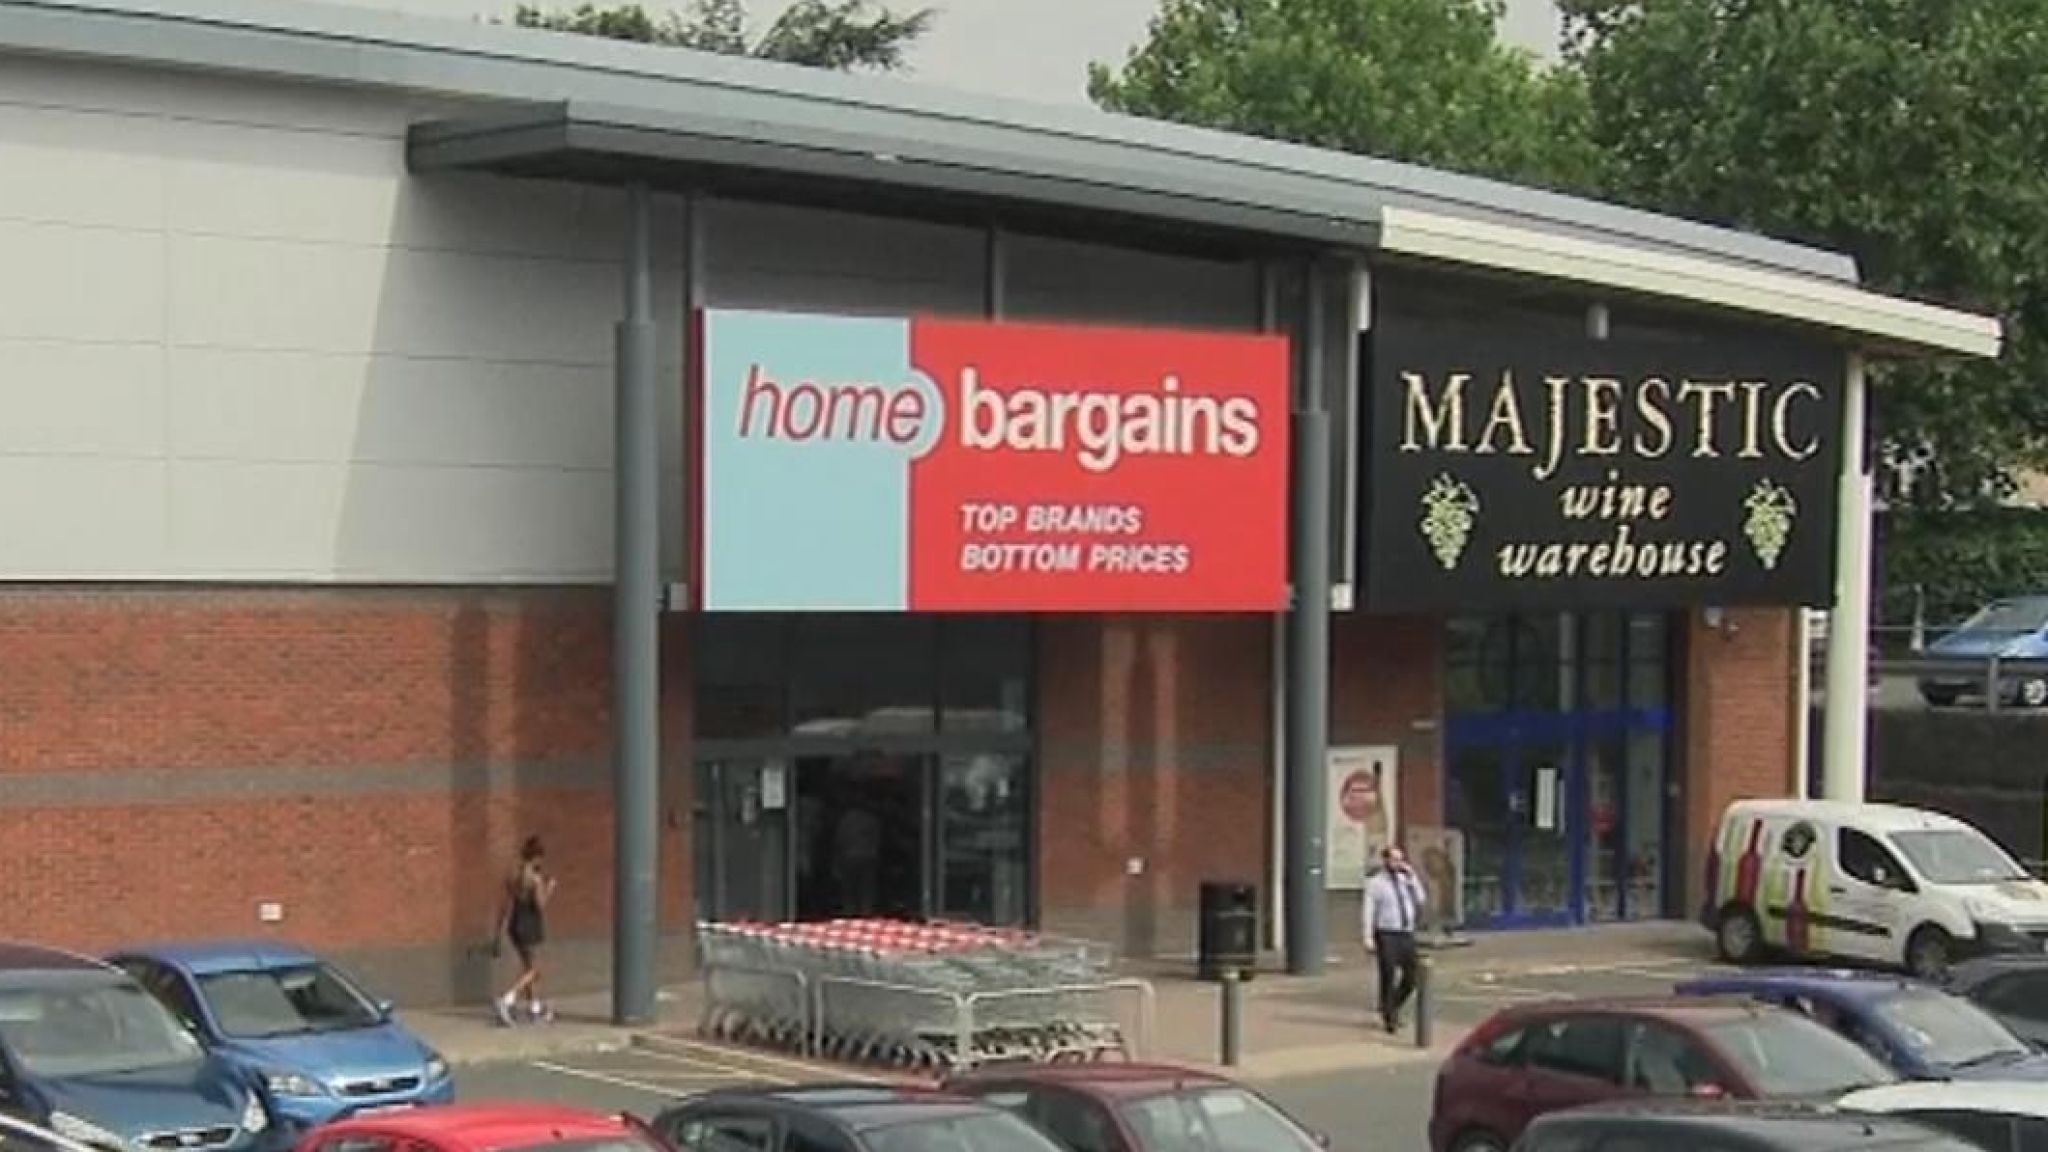 The attack is said to have happened at Home Bargains shop in Worcester.